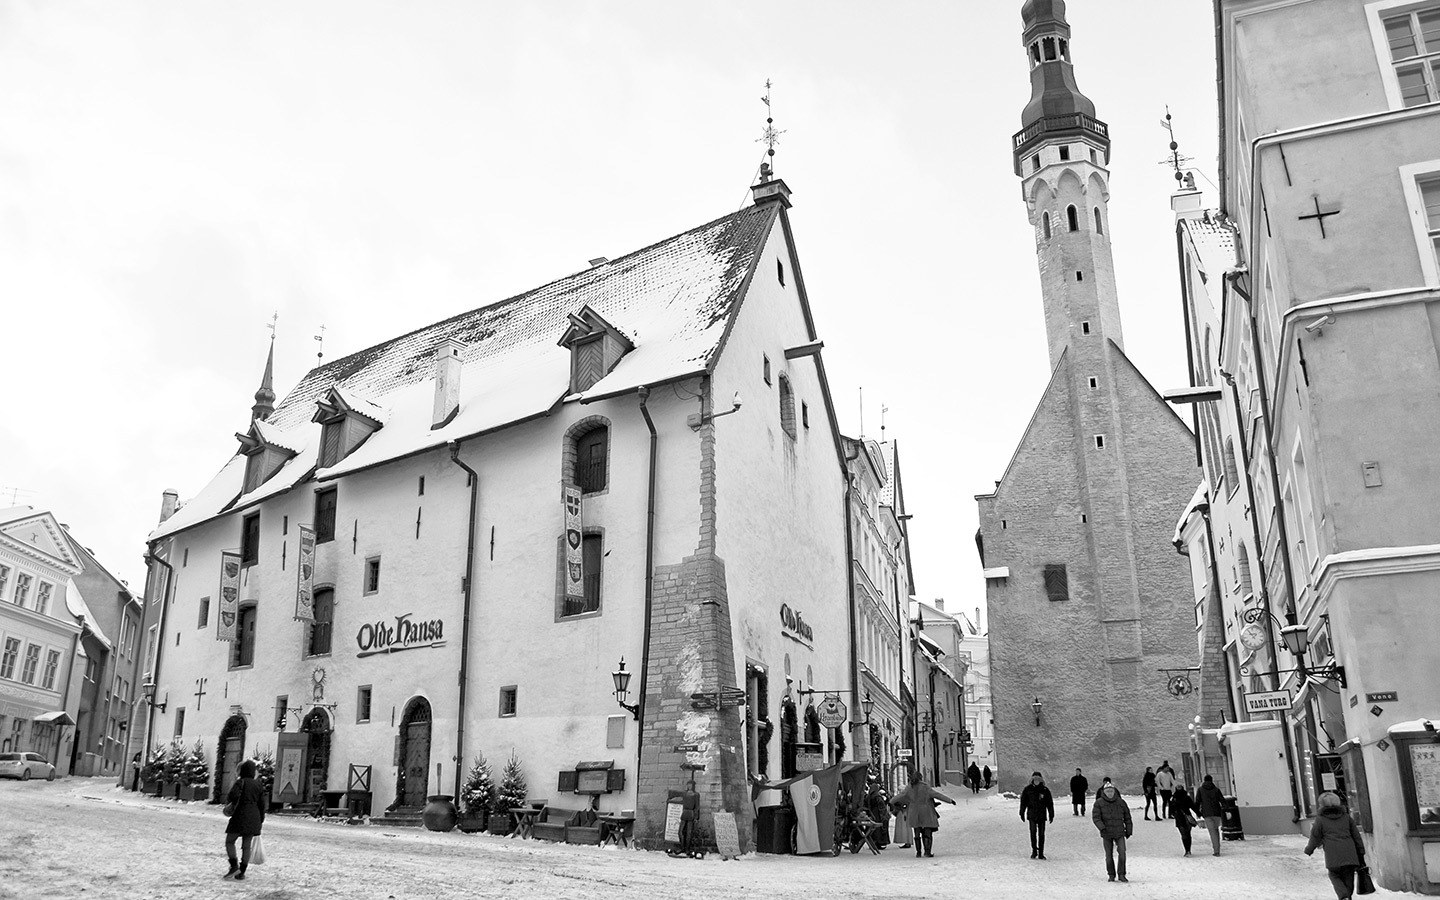 Exploring the Old Town of Tallinn